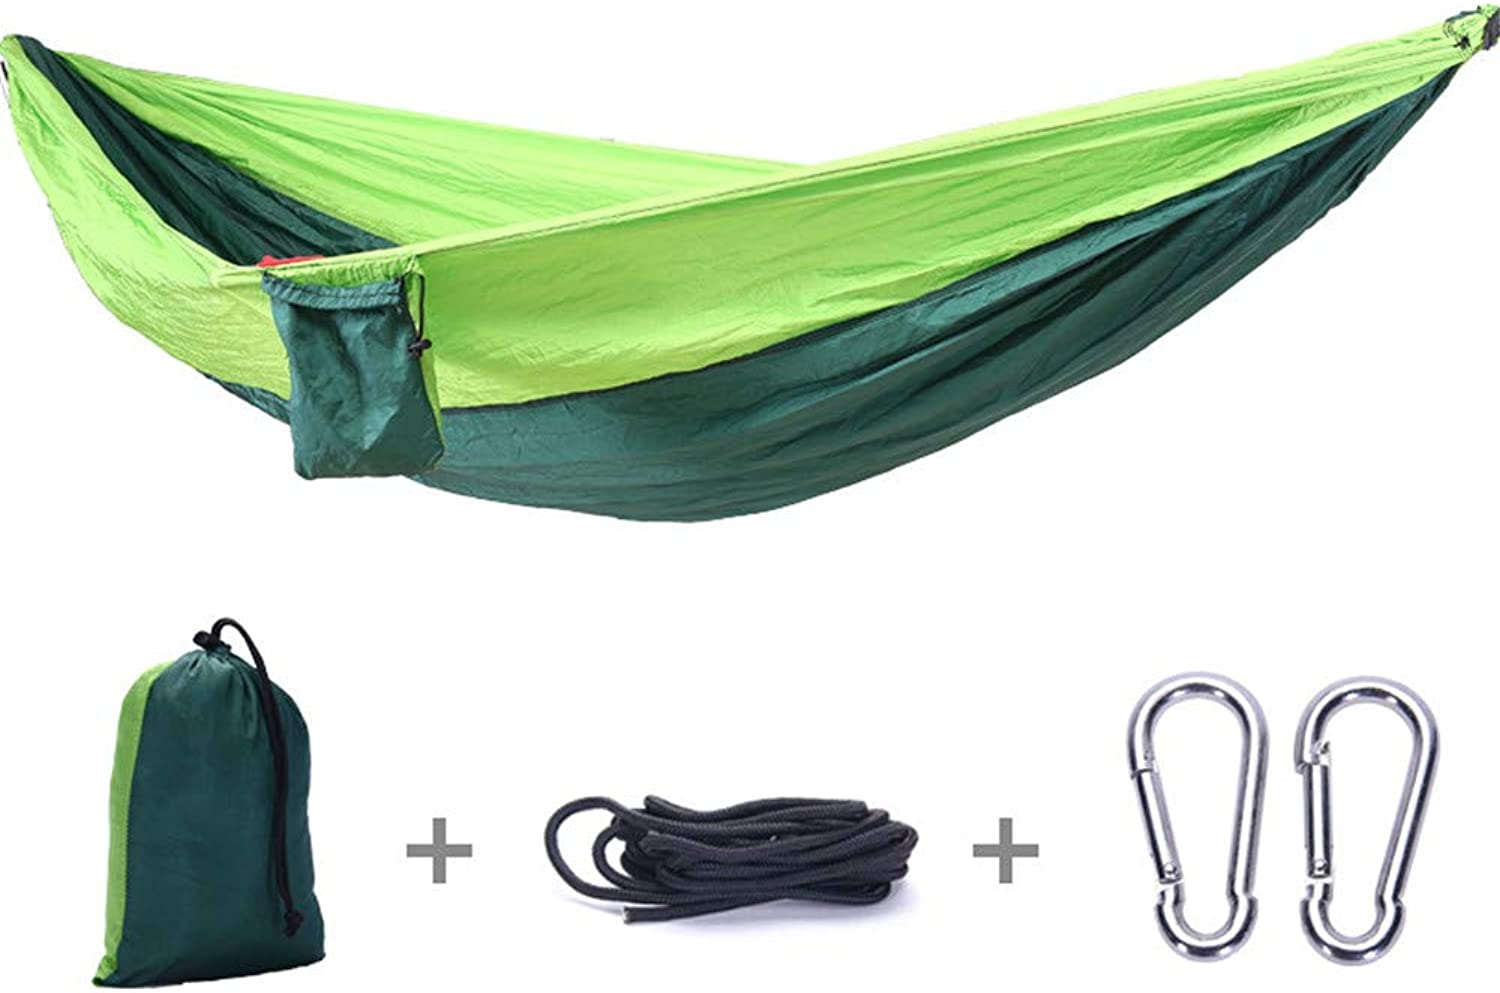 Hammock Camping Double & Single with Tree Straps Indoor Outdoor Backpacking Survival & Travel Portable(270  140 cm),Green